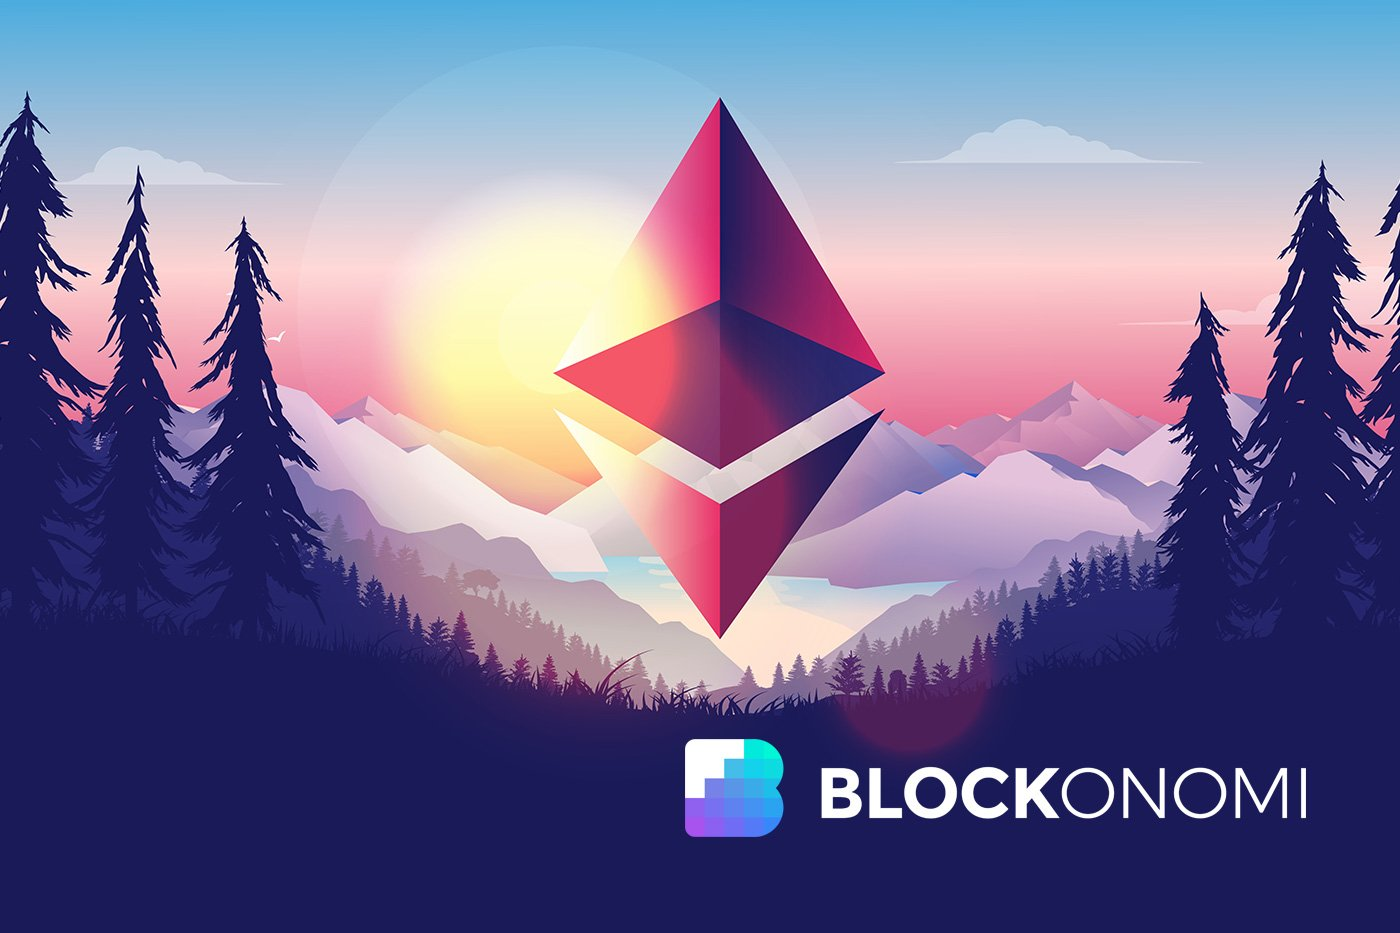 10 Promising New Ethereum Projects That Are Here to Stay